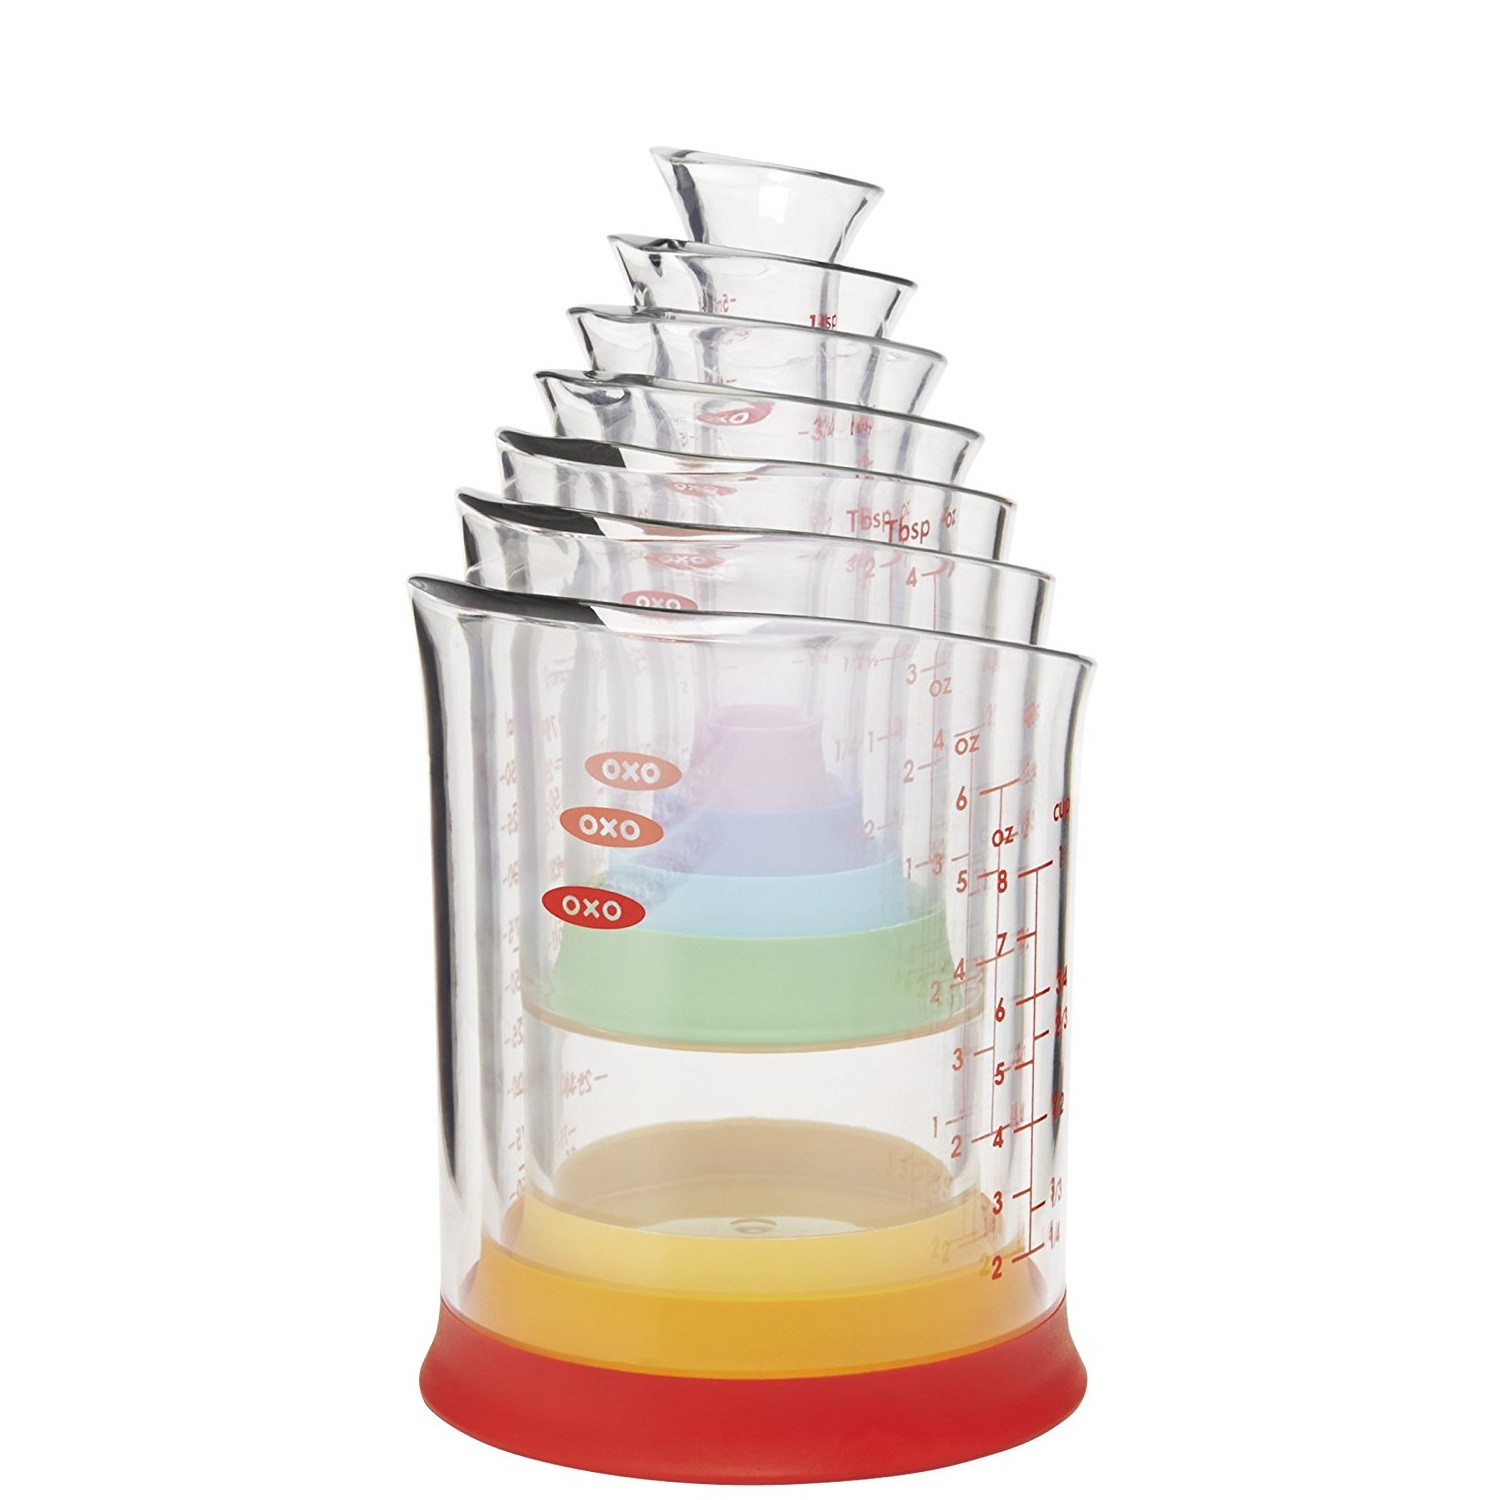 OXO Measuring Beaker Set